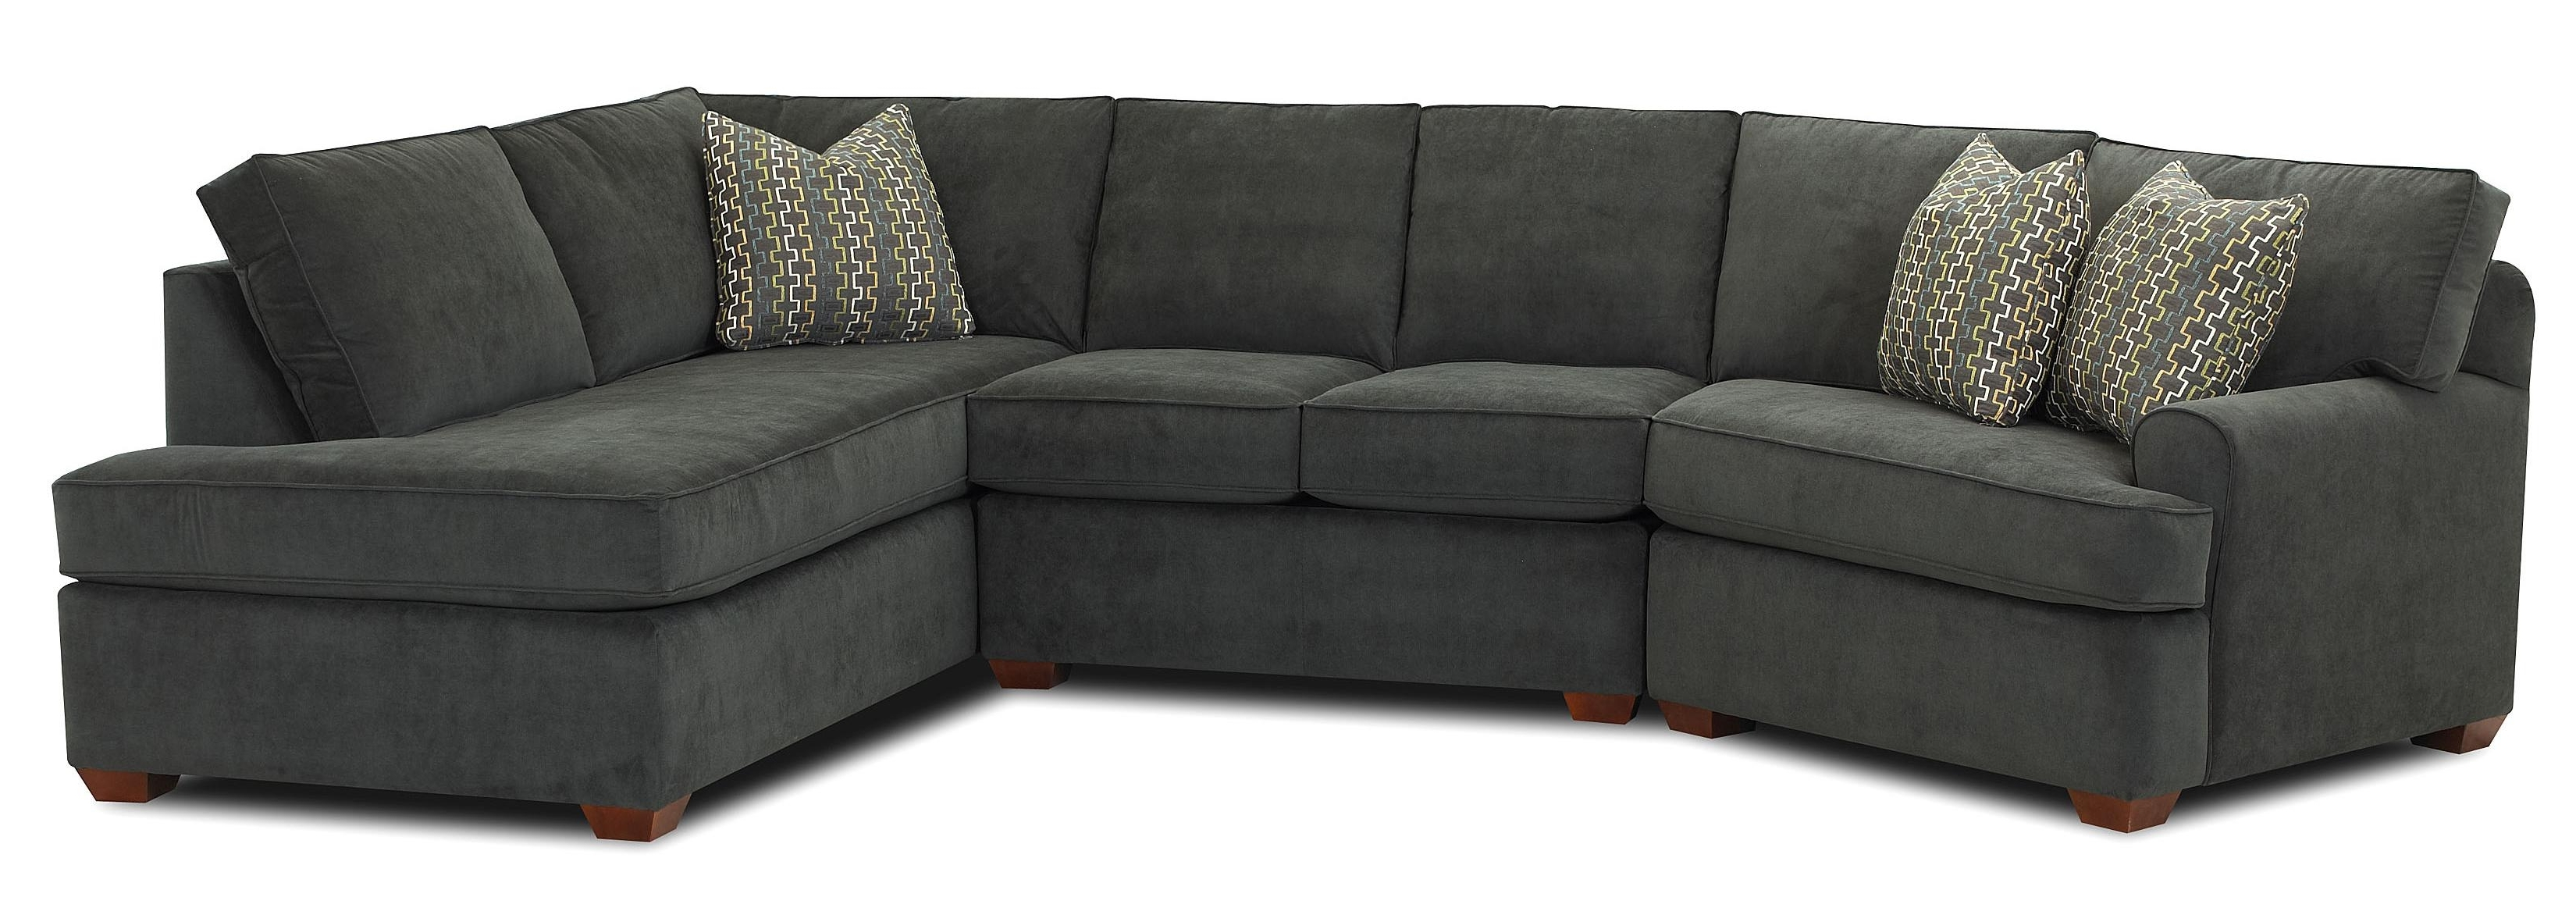 Most Up To Date Dallas Sectional Sofa – Fjellkjeden In Dallas Sectional Sofas (View 12 of 20)